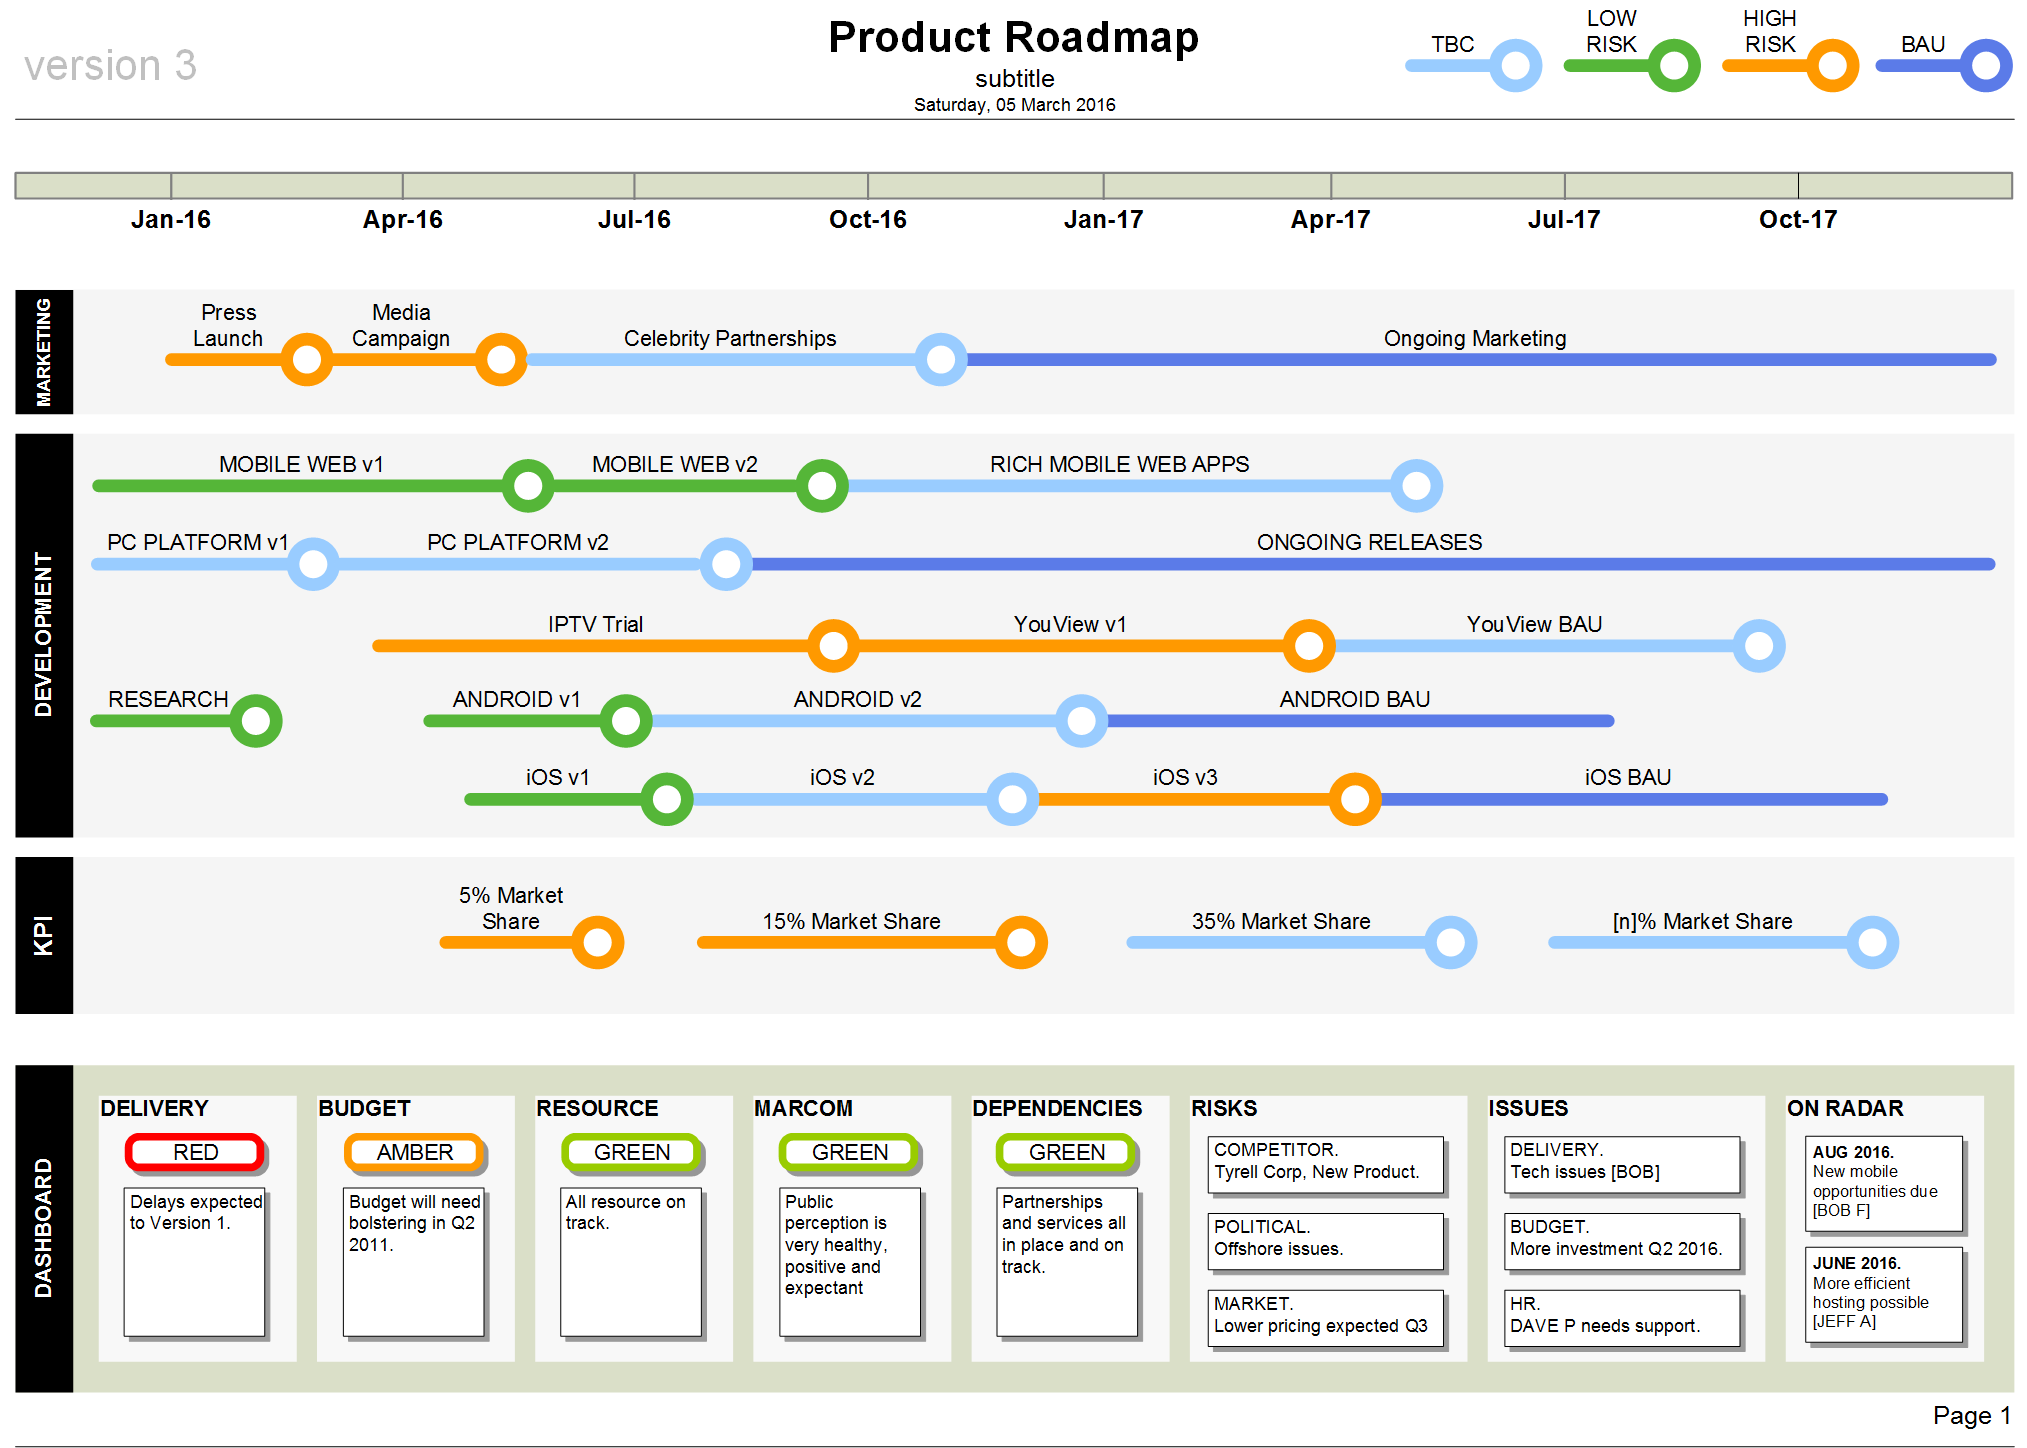 Gantt chart in visio hella wiring diagram conceptual map template this impressive visio product roadmap template presents 428c91bfc2b53127bcb4aca5eddb2c91 235453886747826312 gantt chart in visio gantt chart in visio nvjuhfo Choice Image